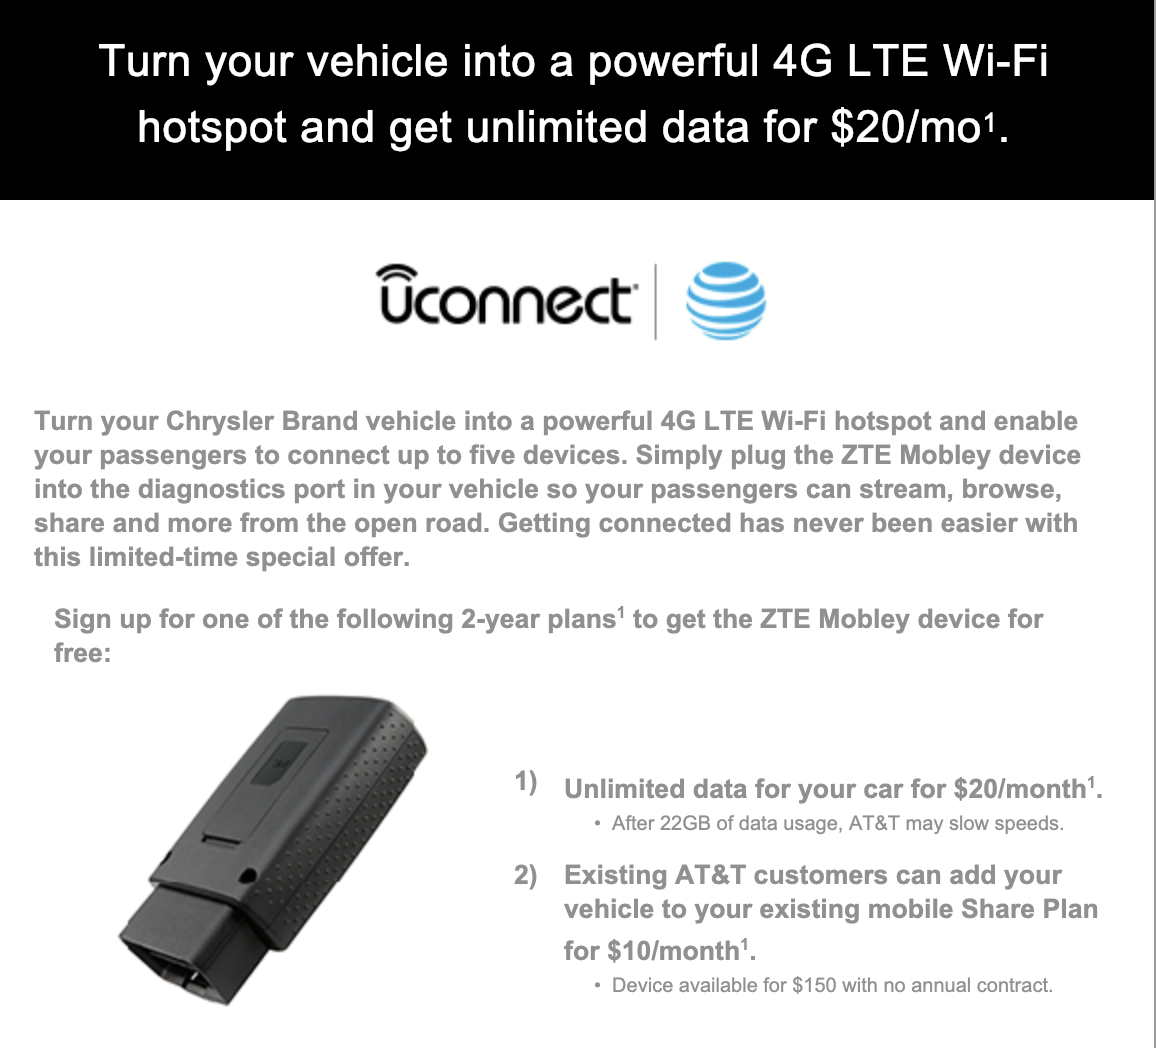 Att Internet Specials >> At T 20 Month Unlimited Mobley Plan Back For A Limited Time Via